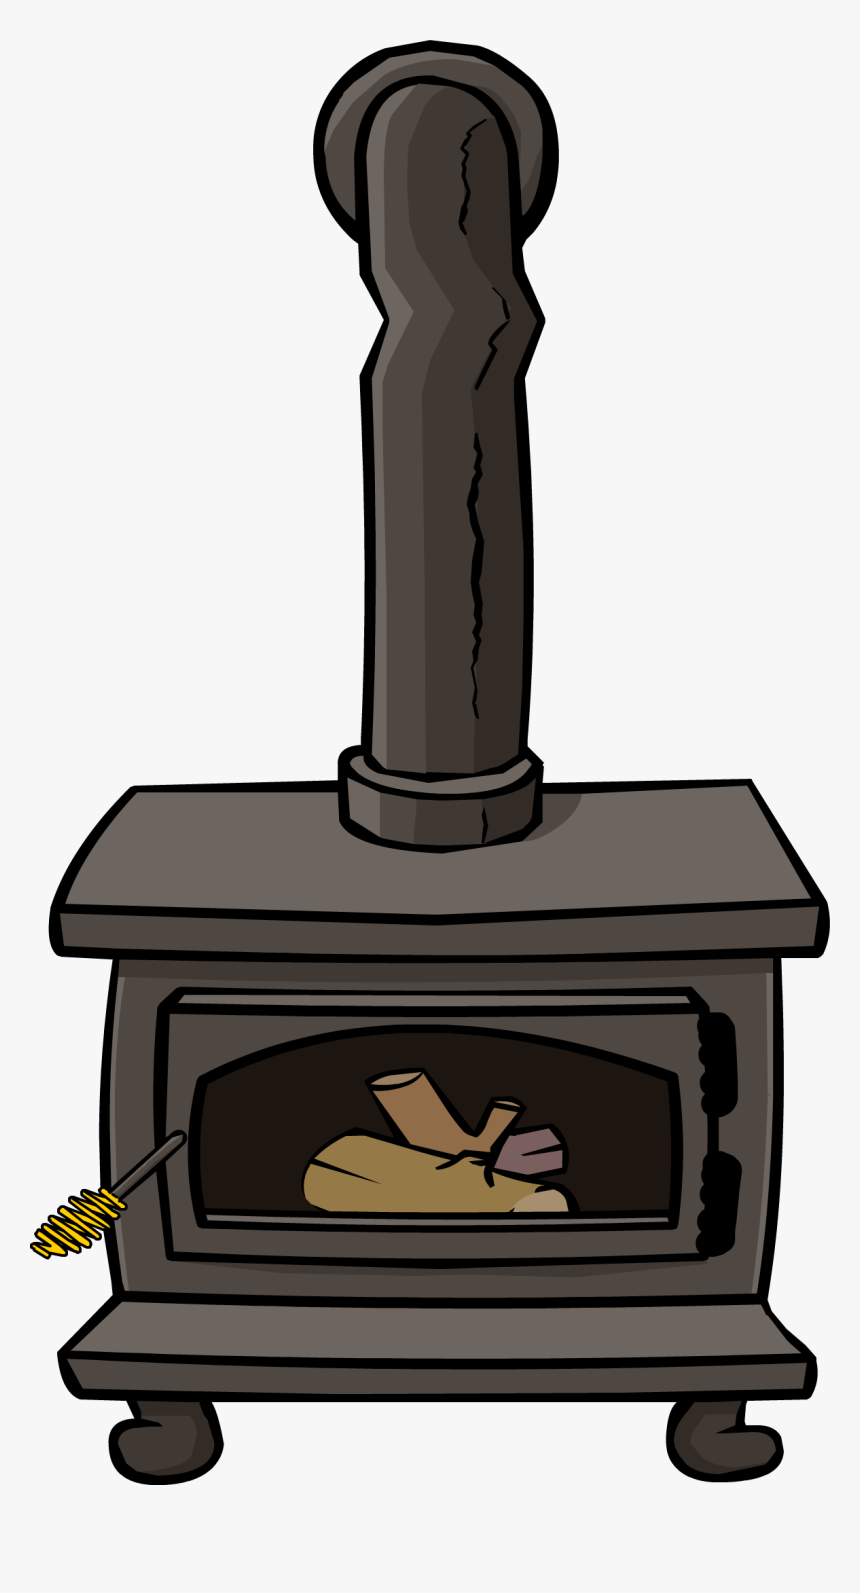 Clipart Fire Stove - Wood Burning Stove Clip Art, HD Png Download, Free Download